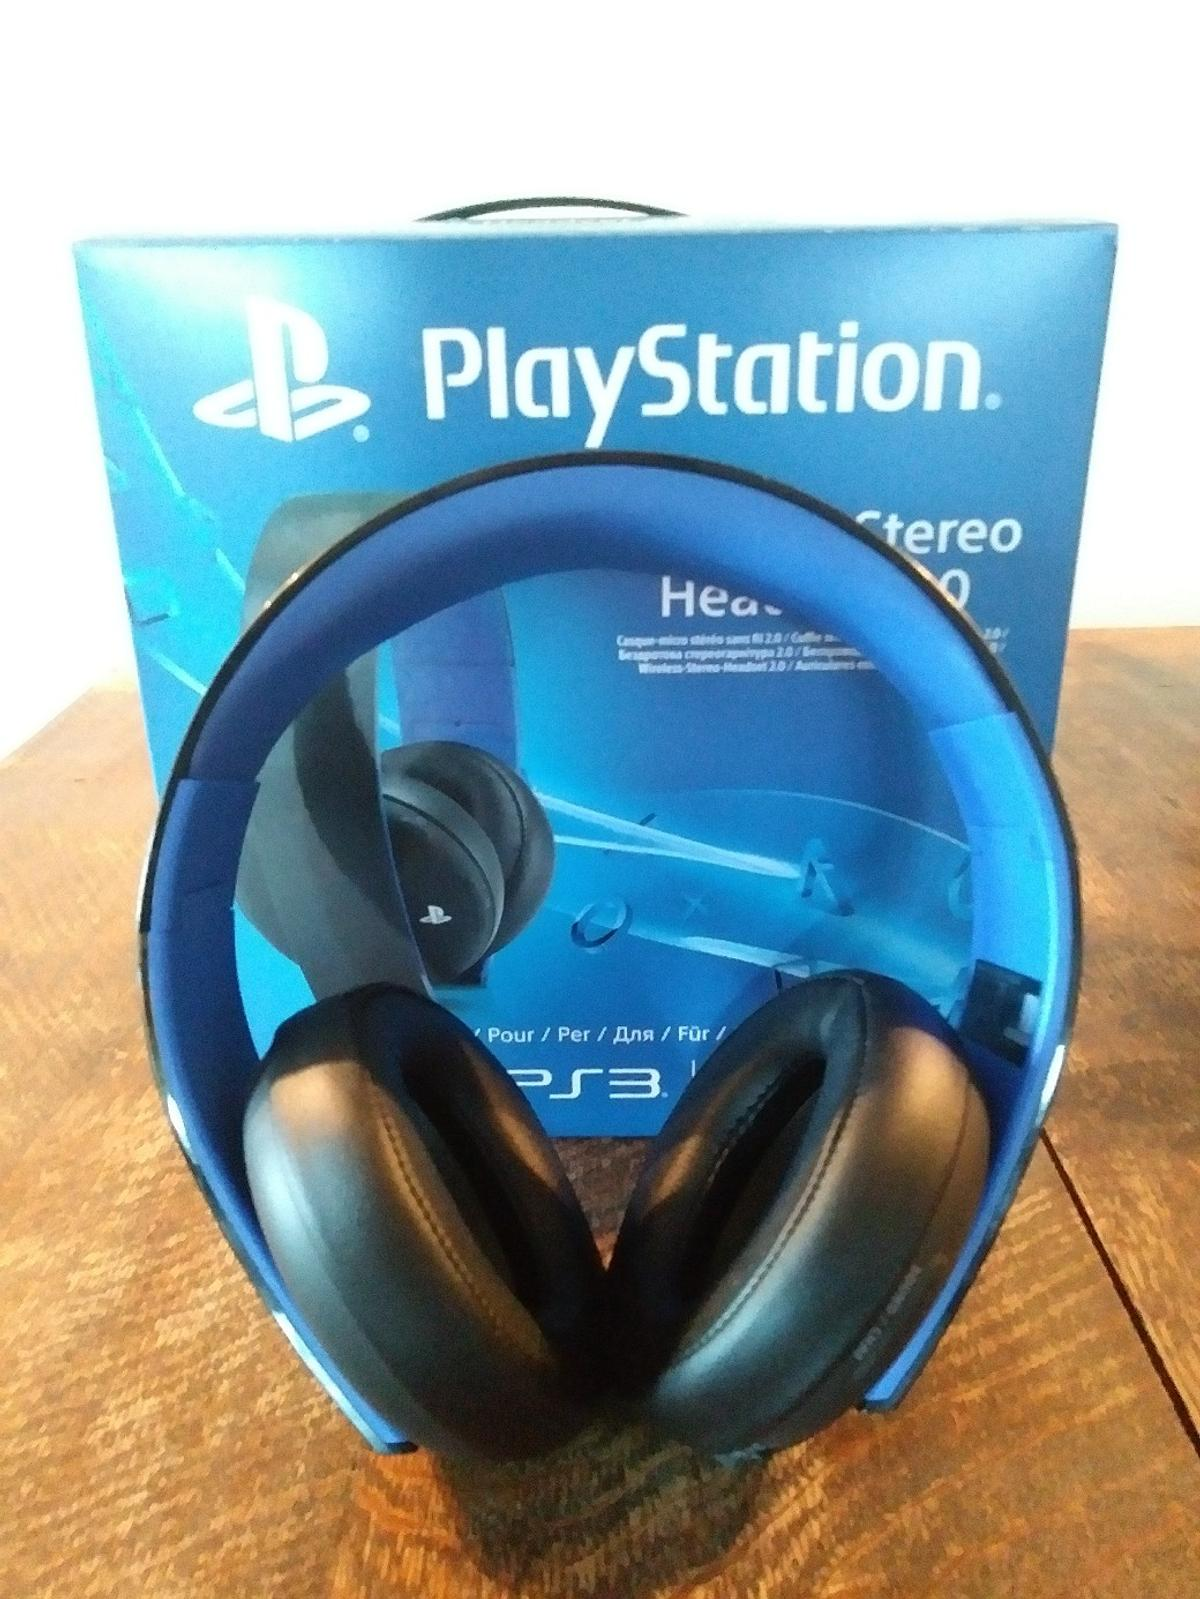 Sony PlayStation Wireless Stereo Headset 2.0 in SG13